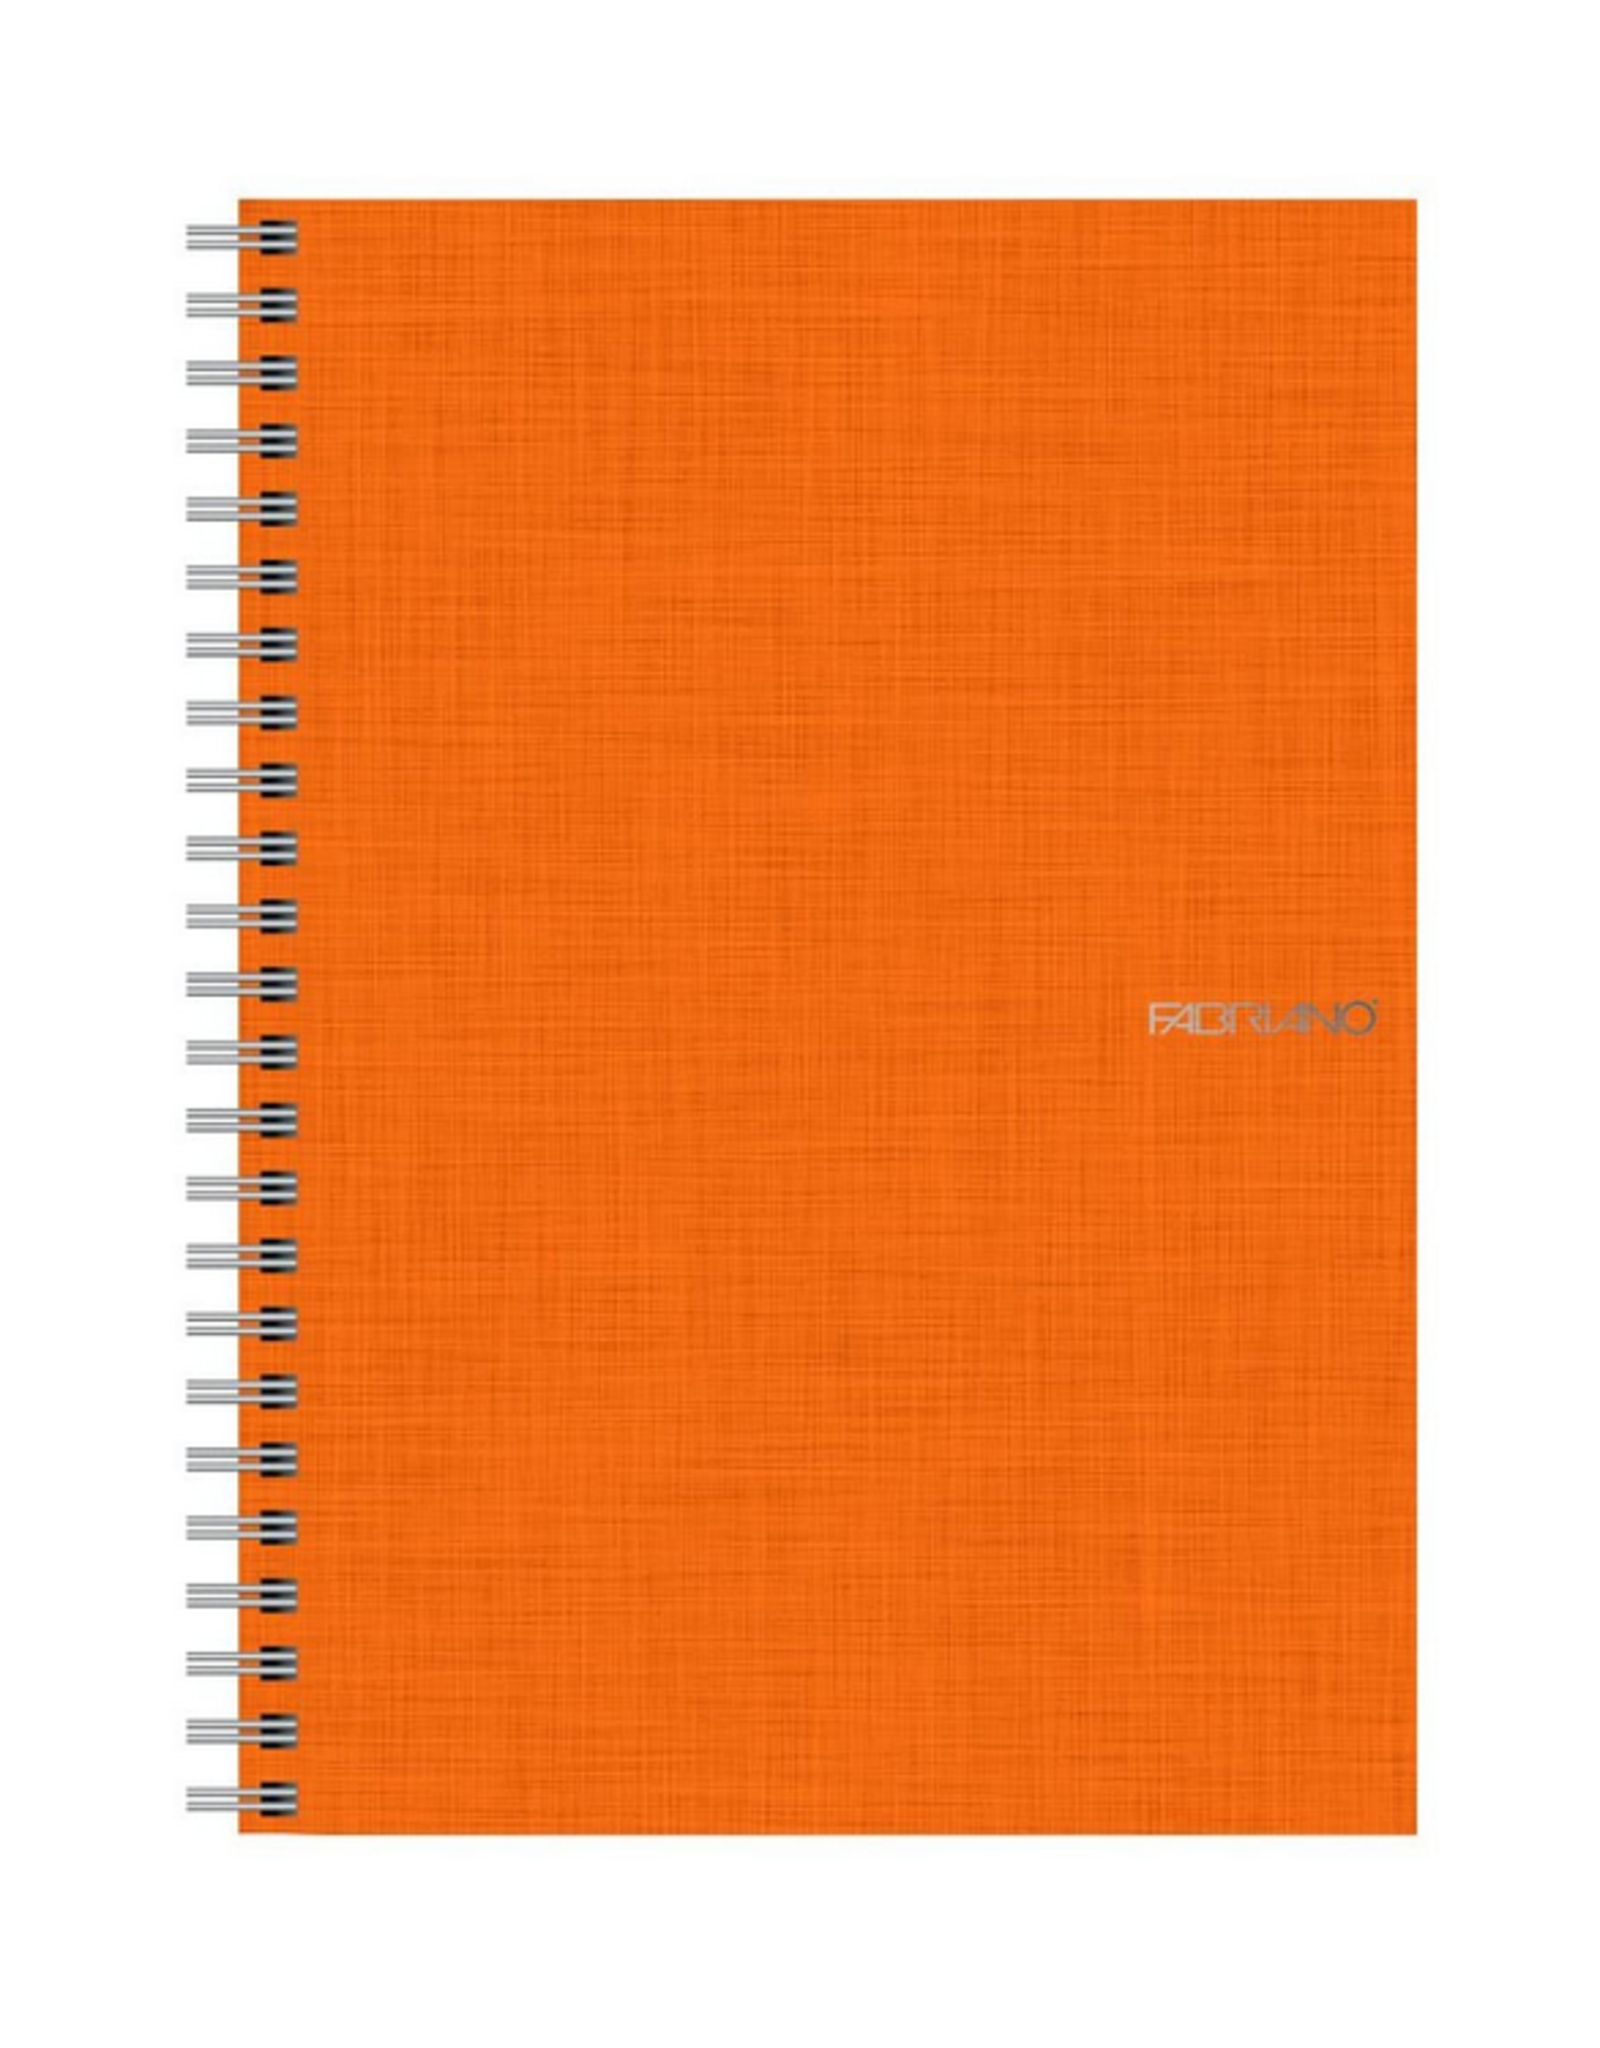 Fabriano Eco Qua Spiral Notebook - Orange